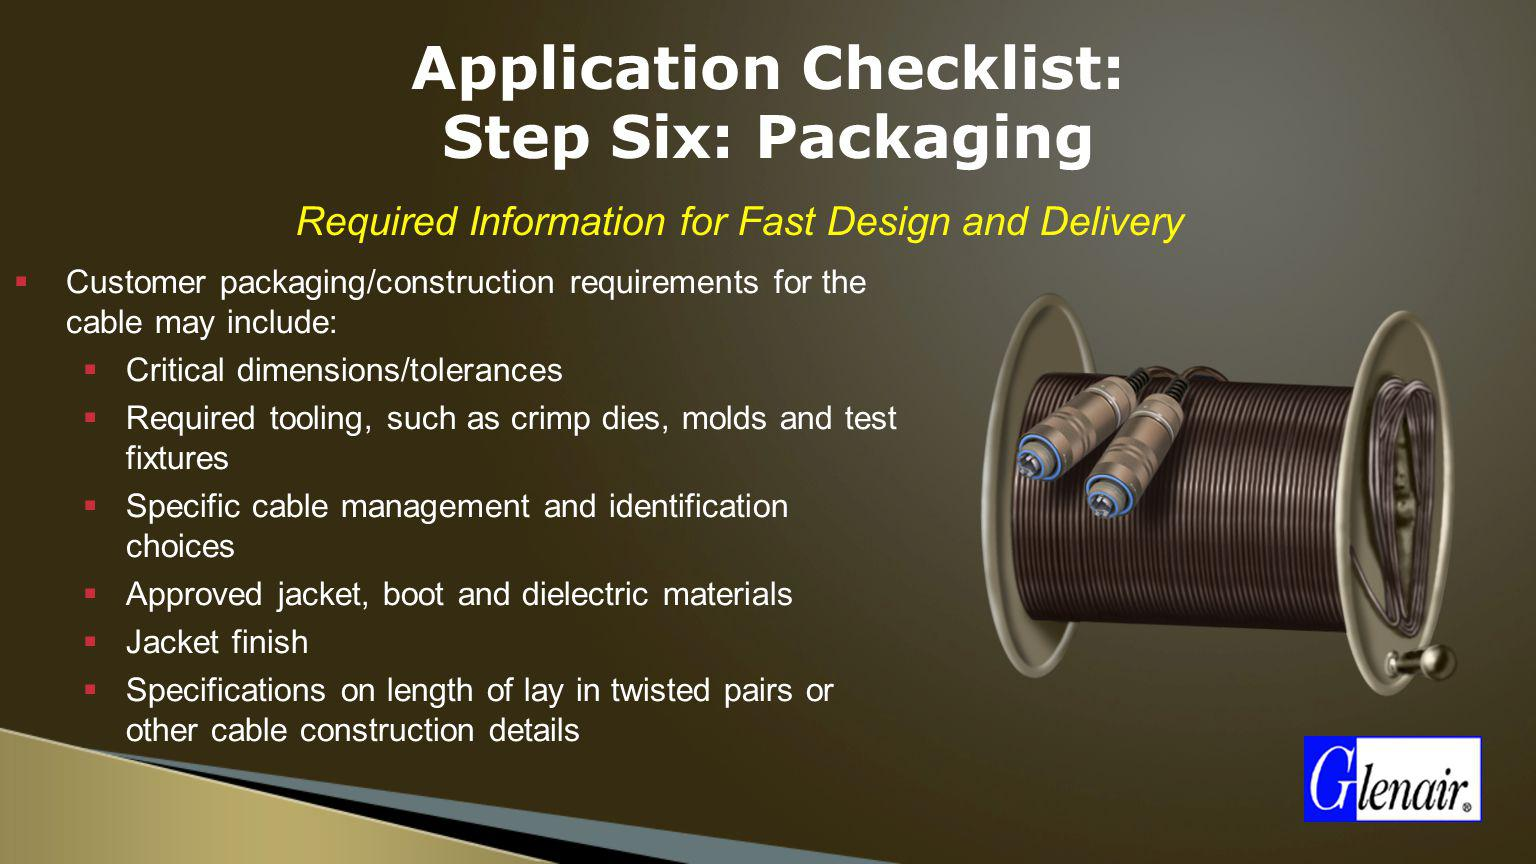 Application Checklist: Step Six: Packaging